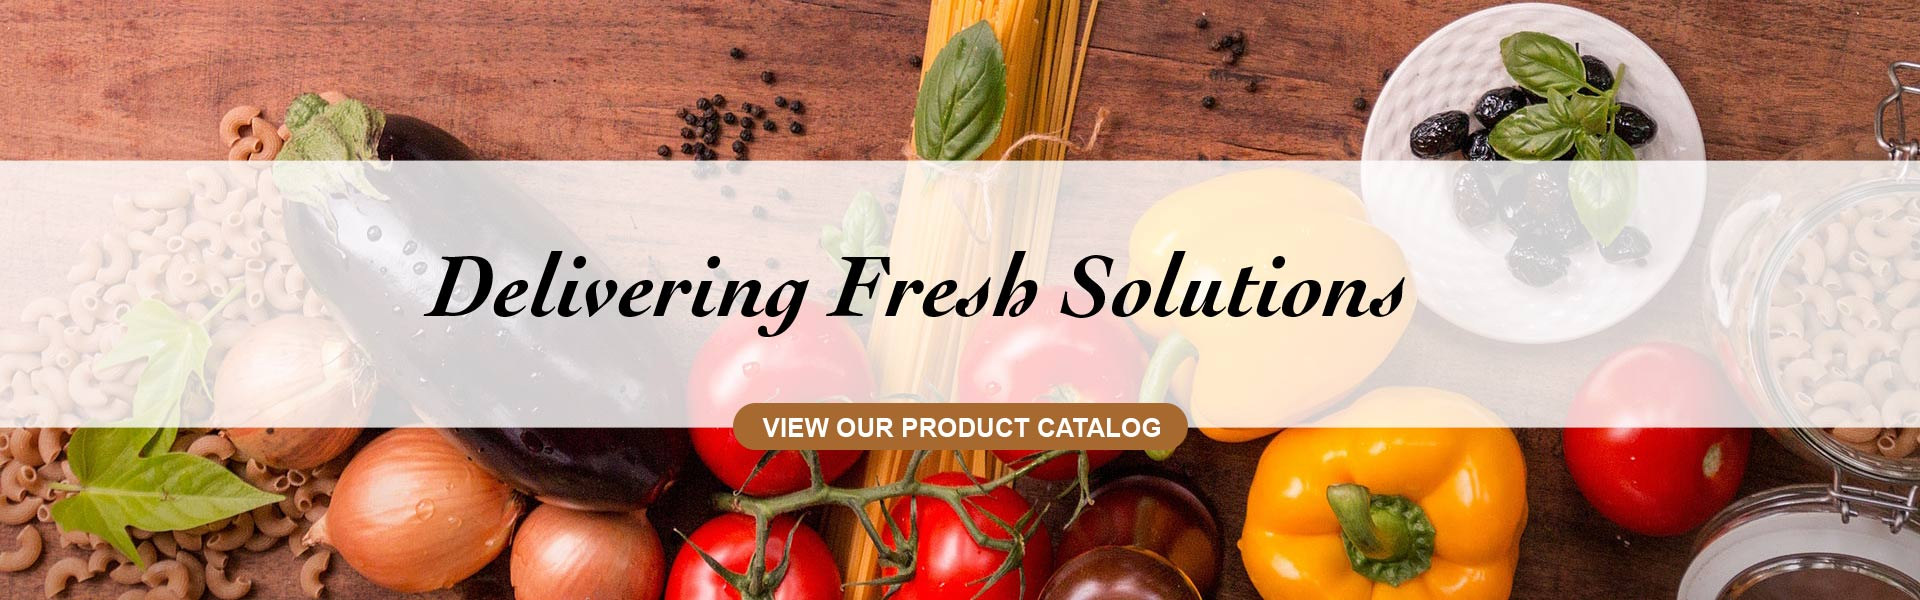 Cotati Food Service - Delivering Fresh Solutions